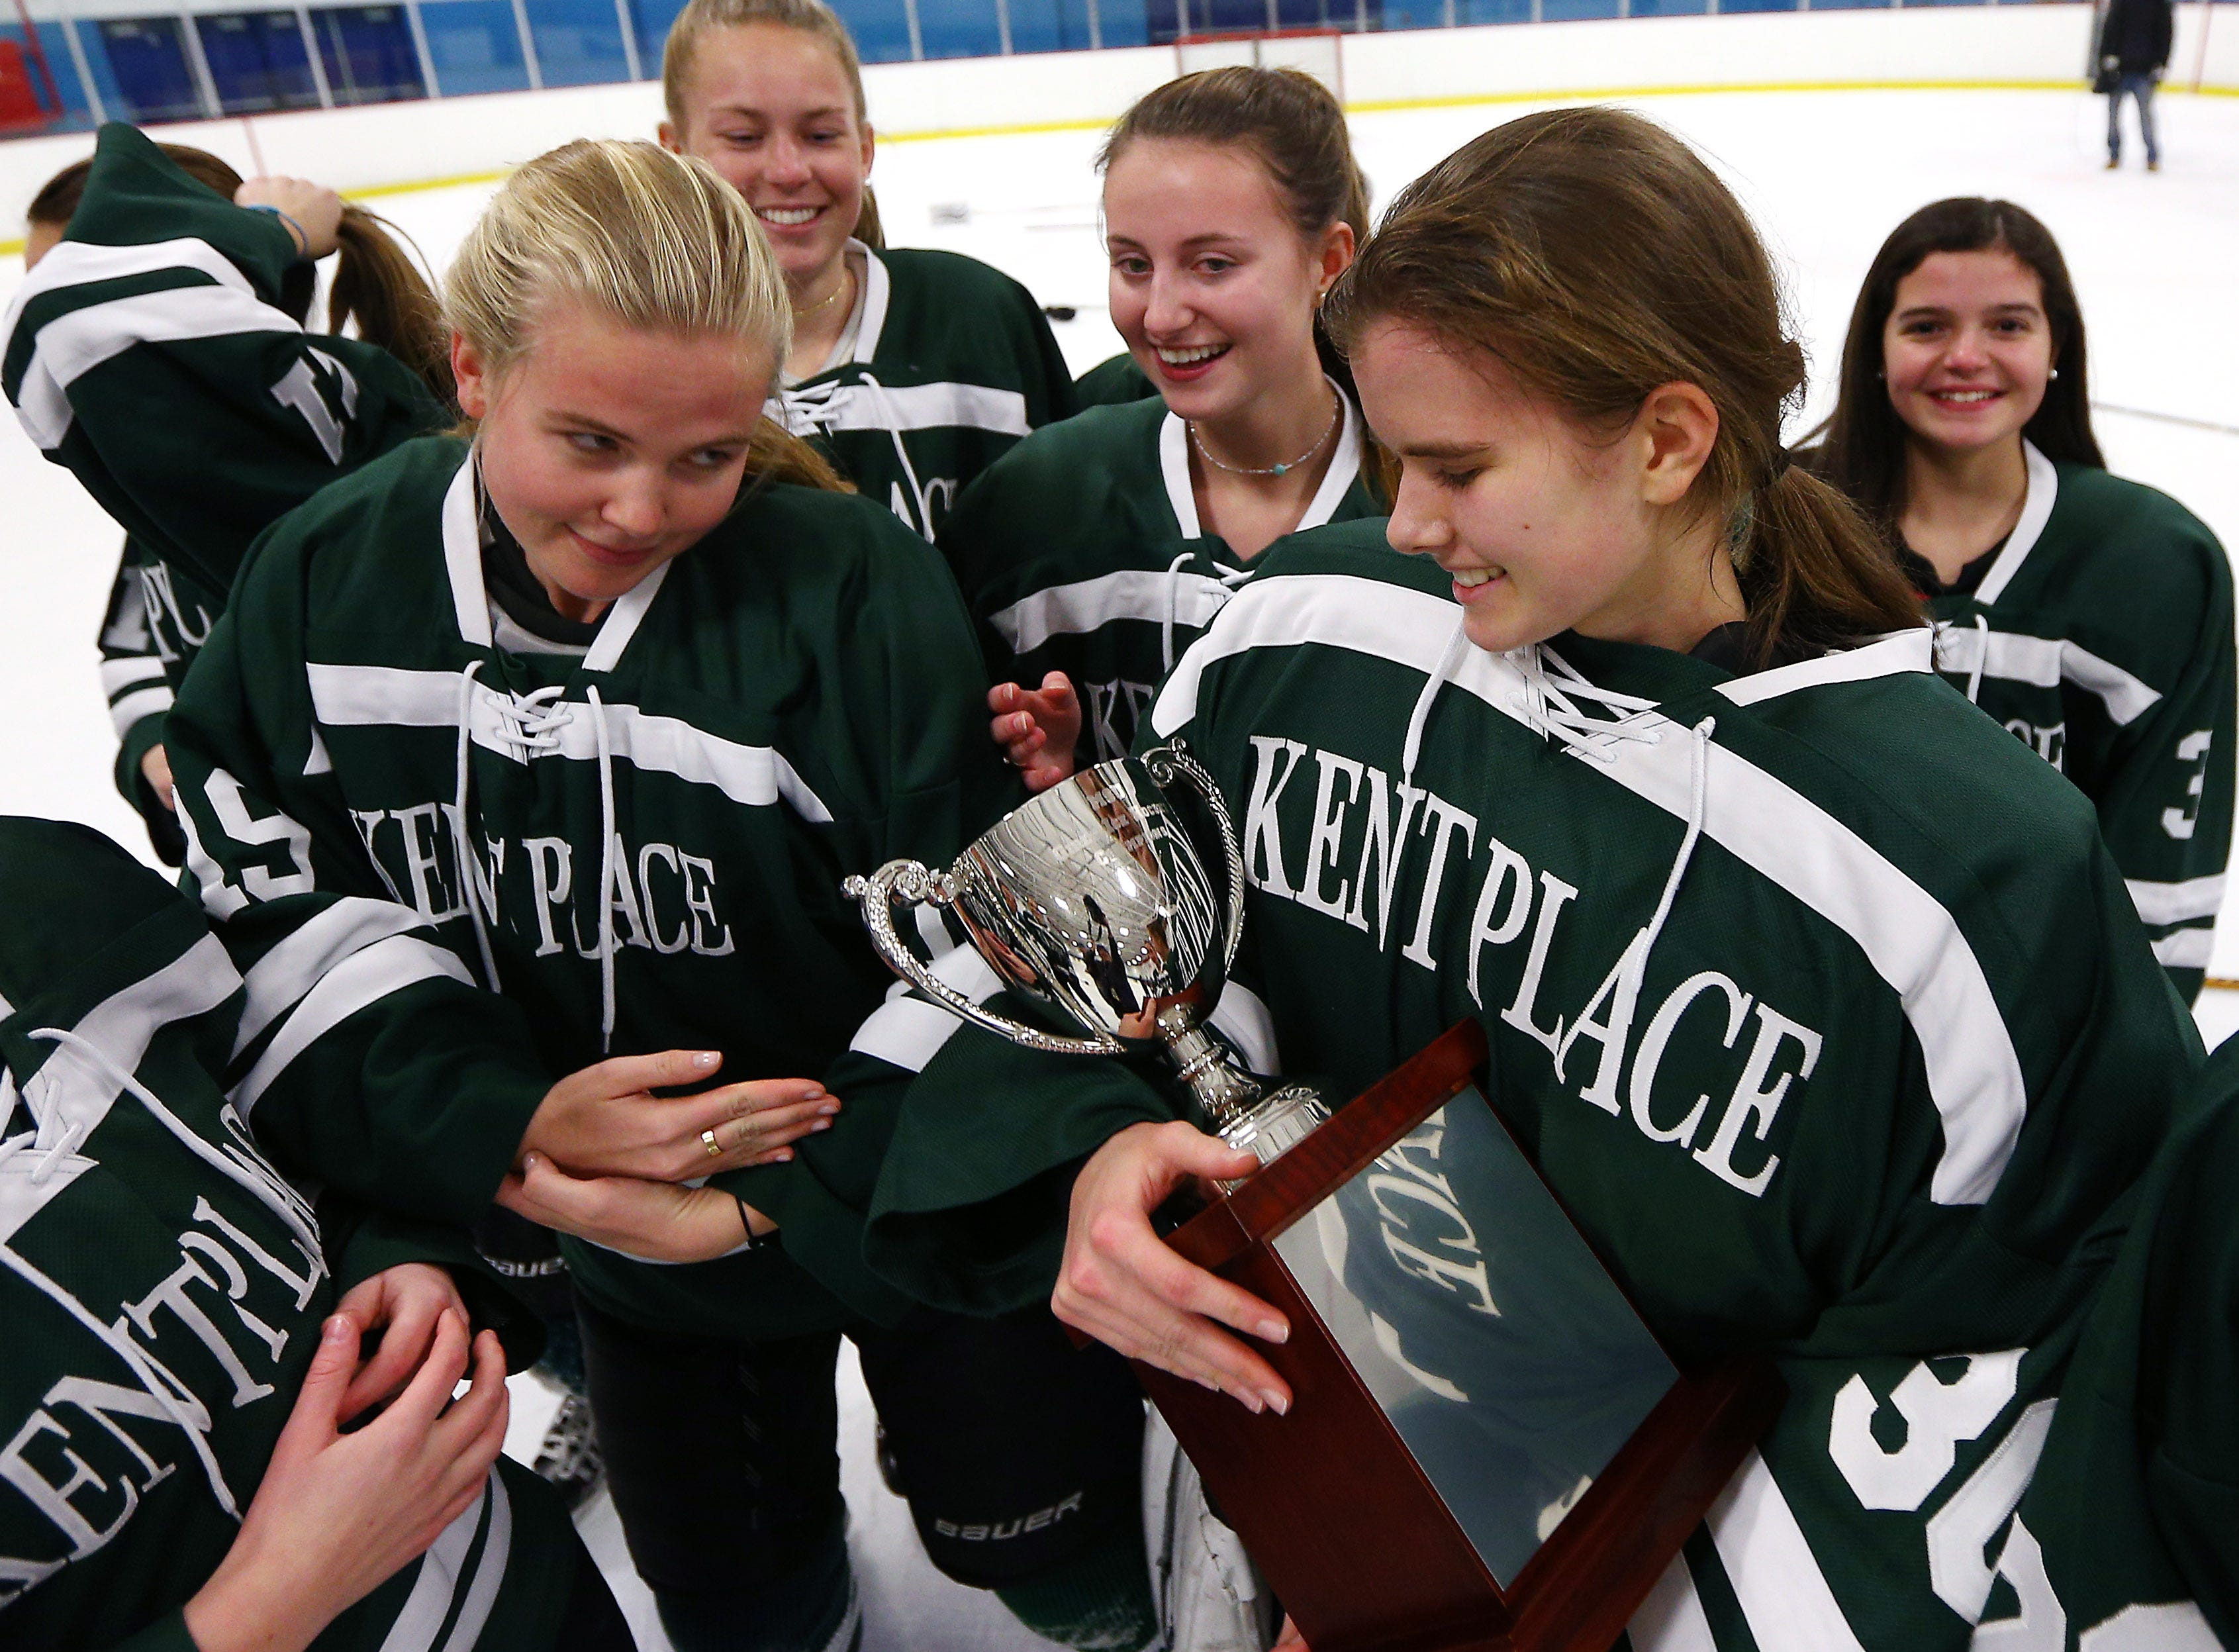 Kent Place goaltender Isla Okkinga gets a tip from teammate Natalie Gilfillan how to cradle the winning trophy after defeating Chatison in the inaugural MUGIHL Girls Ice Hockey League final at Mennen Arena. February 20, 2018. Morris Twp, NJ.